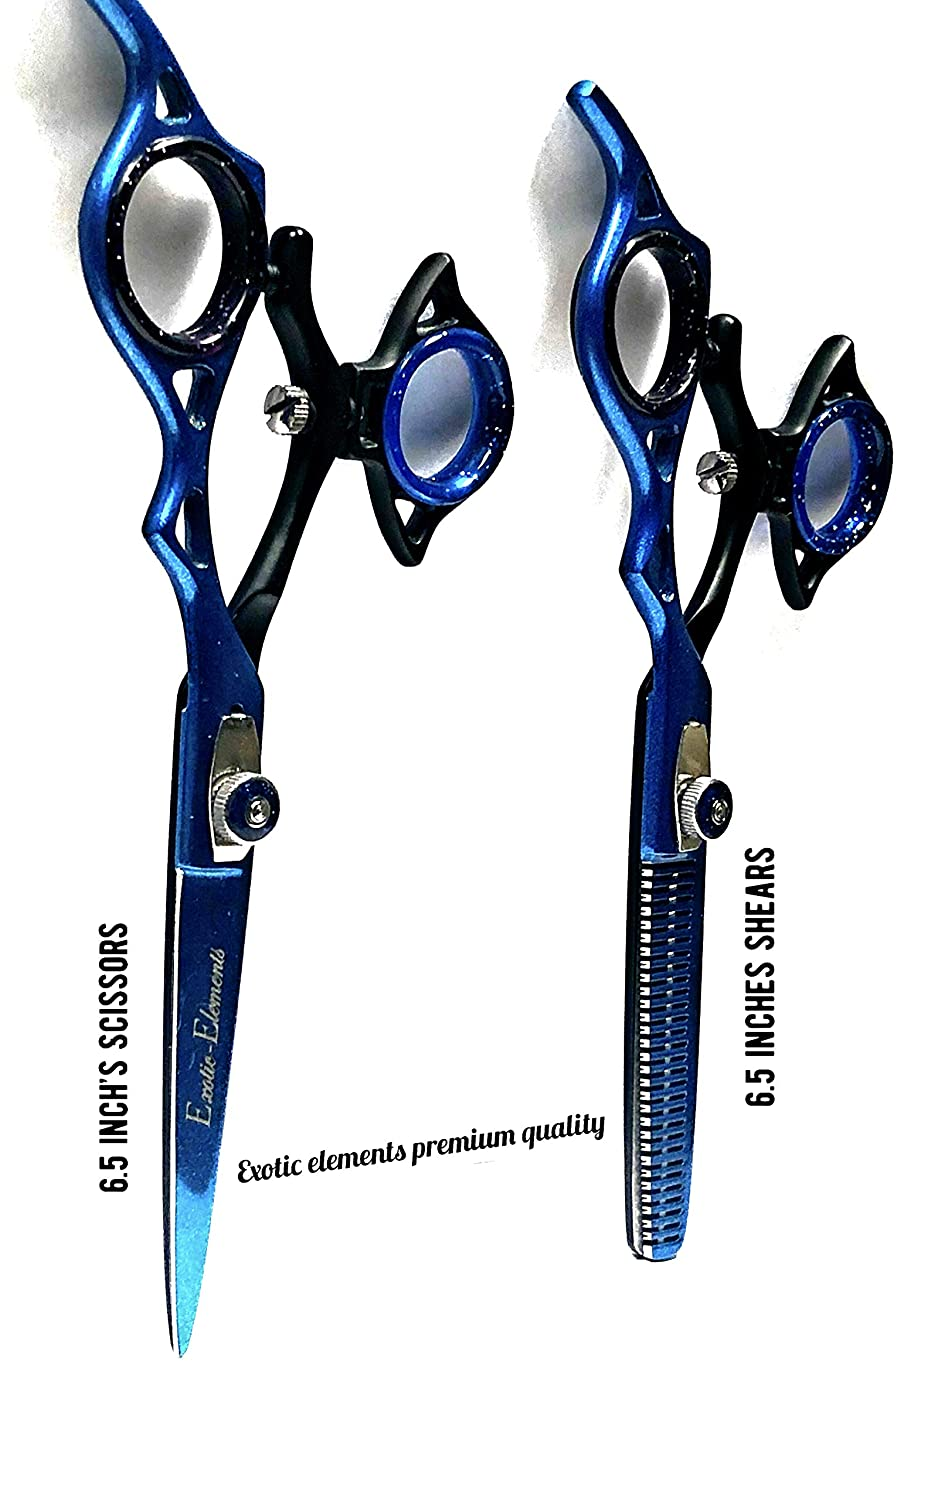 Premium All Purpose Scissors For Men - Professional Barber 6.8